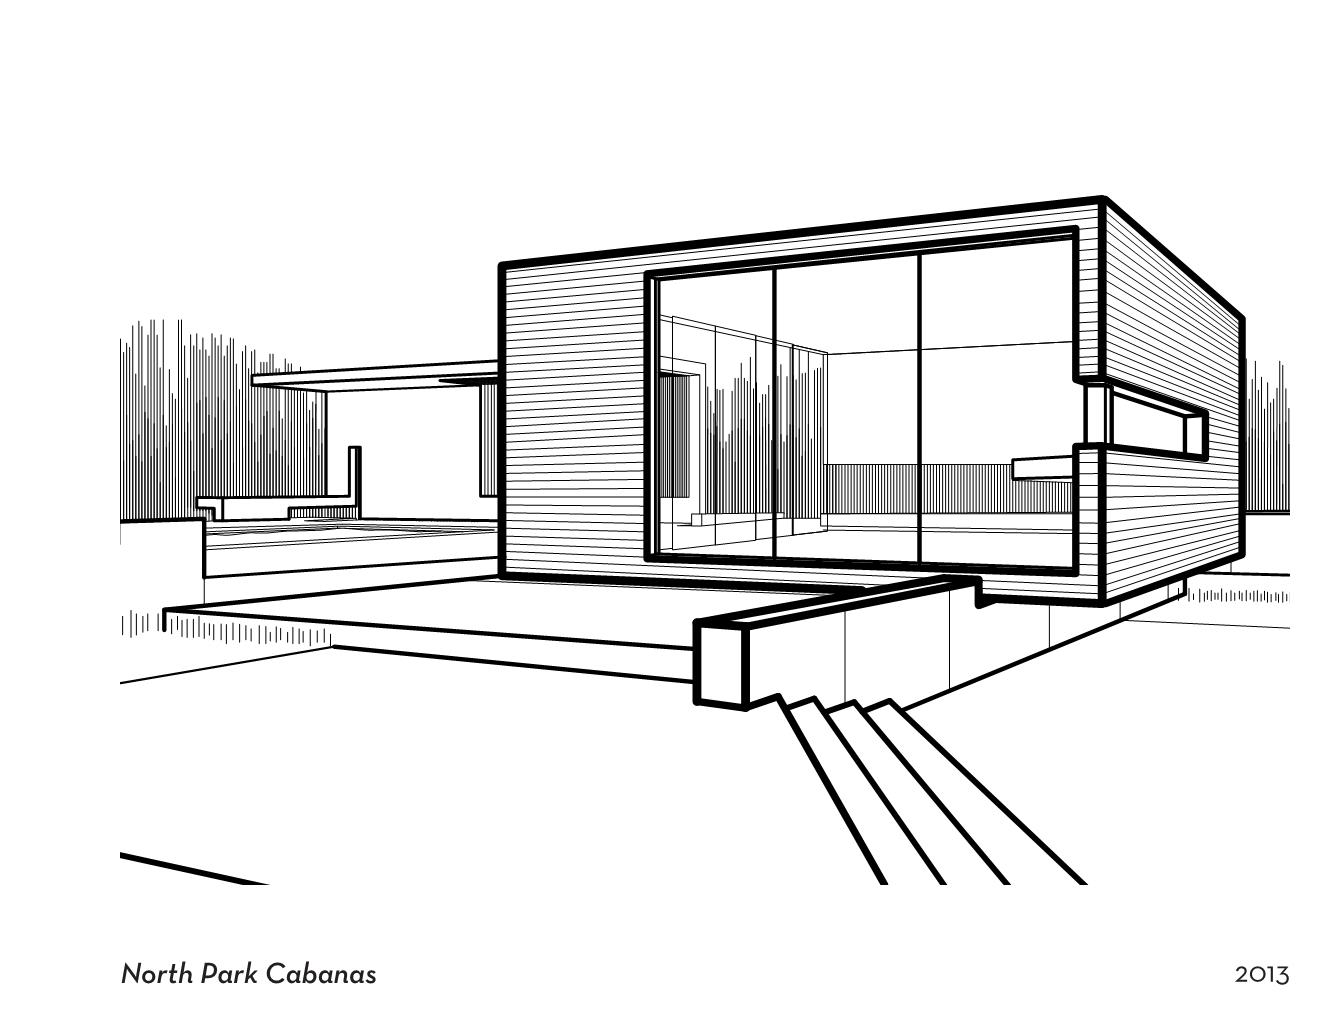 130215 Robert Maschke Architects Coloring Book DRAFT Page 030.jpg